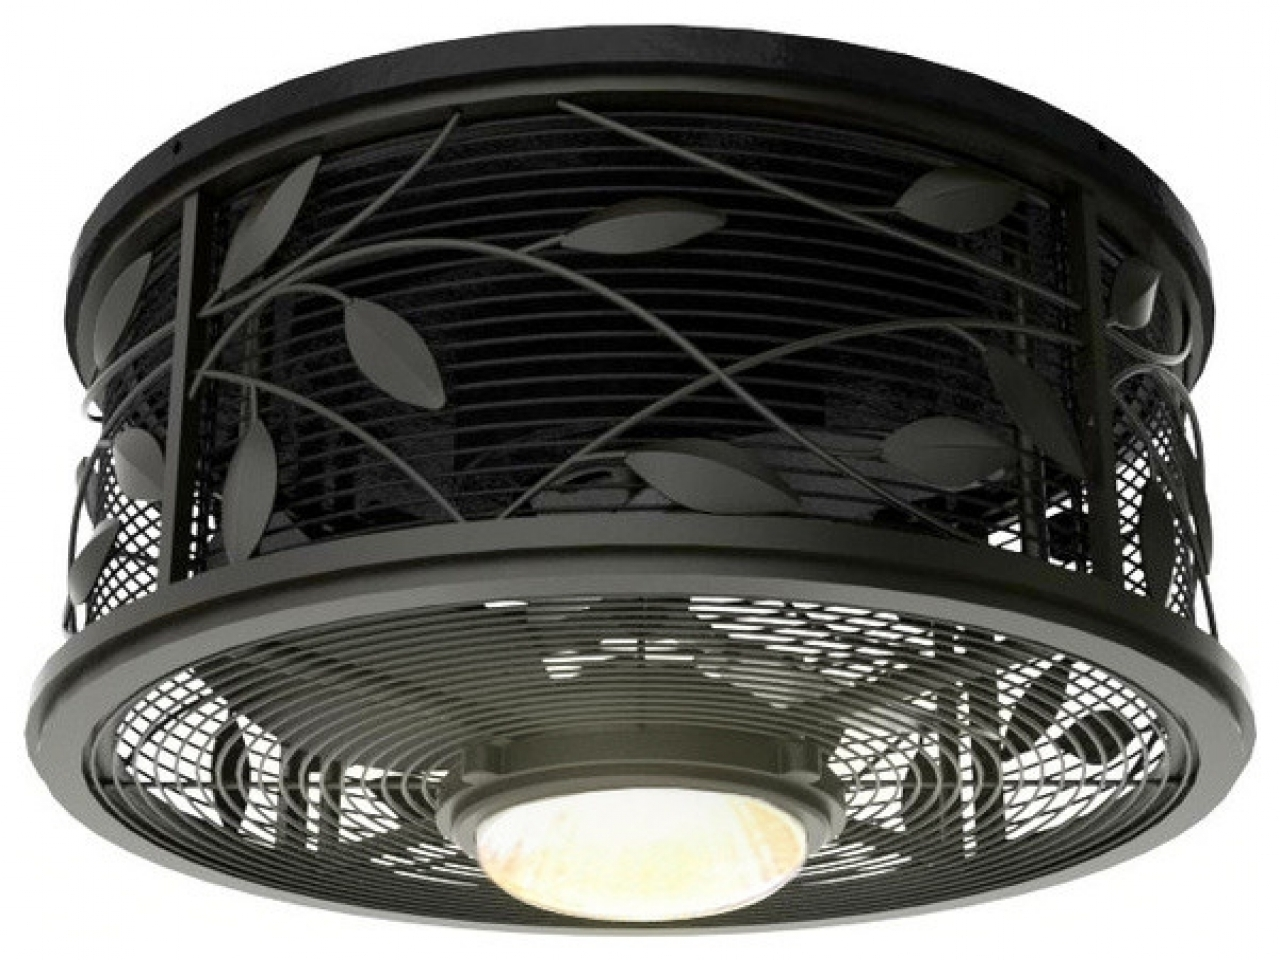 Hugger Outdoor Ceiling Fans With Lights Intended For Famous Hugger Outdoor Ceiling Fans – Photos House Interior And Fan (Gallery 10 of 20)